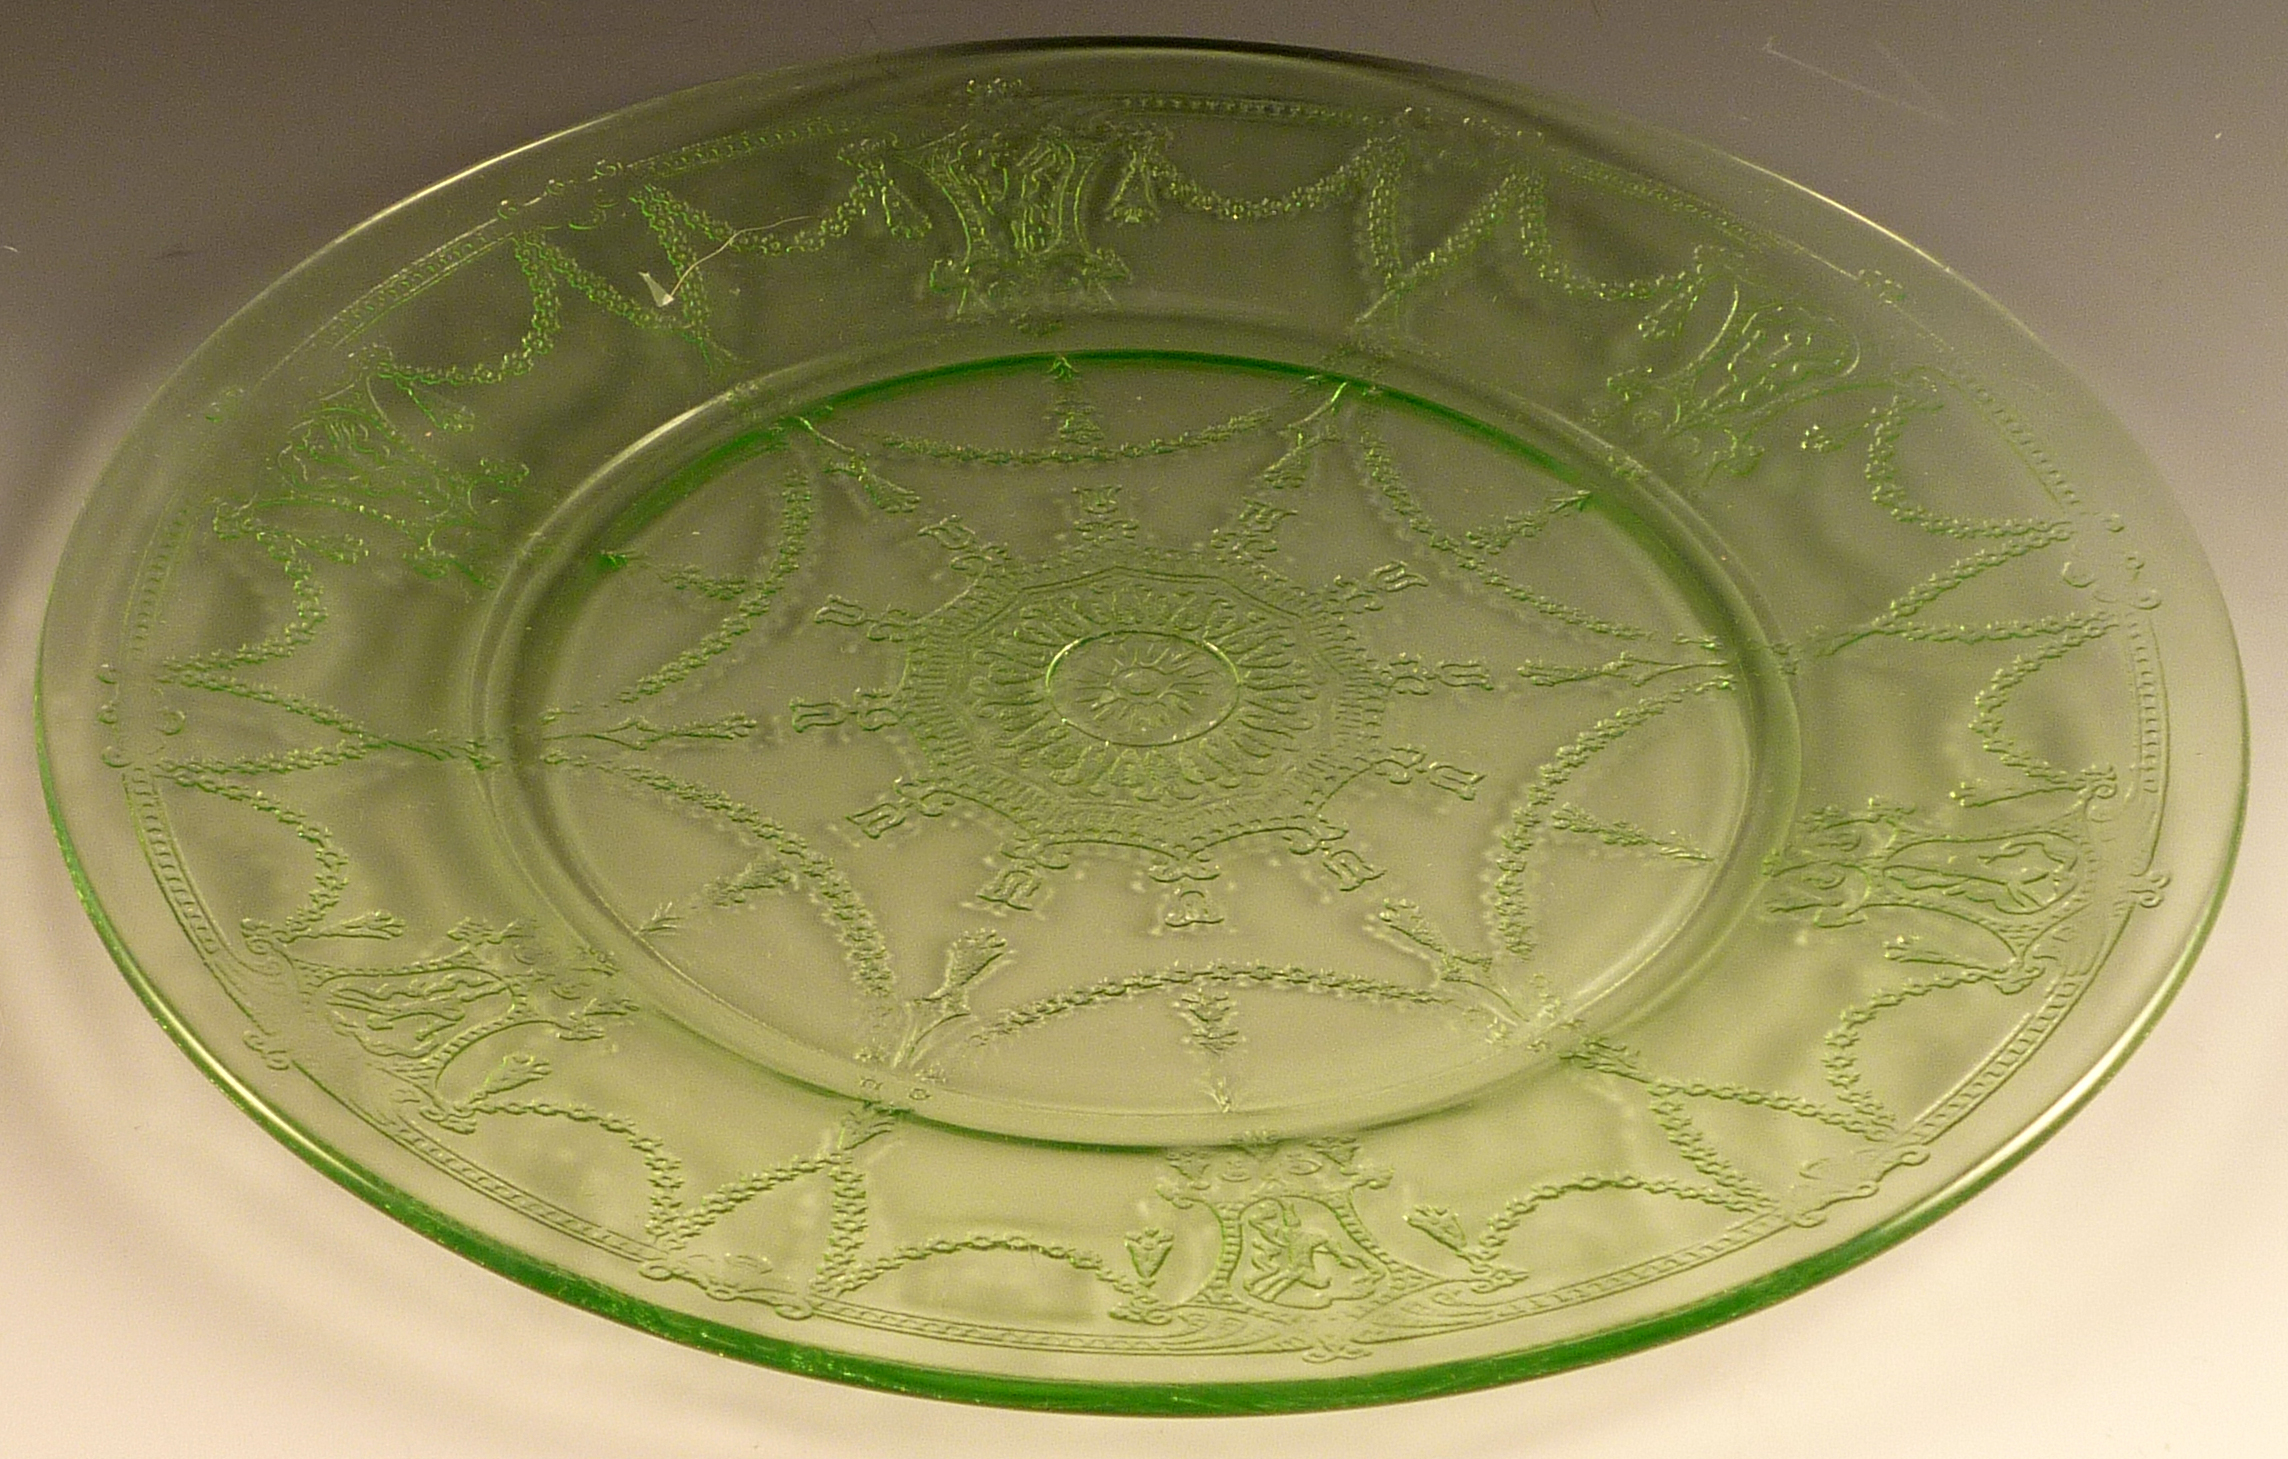 Cameo Green Depression Glass Dinner Plate & Cameo Depression Glass Dinner Plates Product Review Video